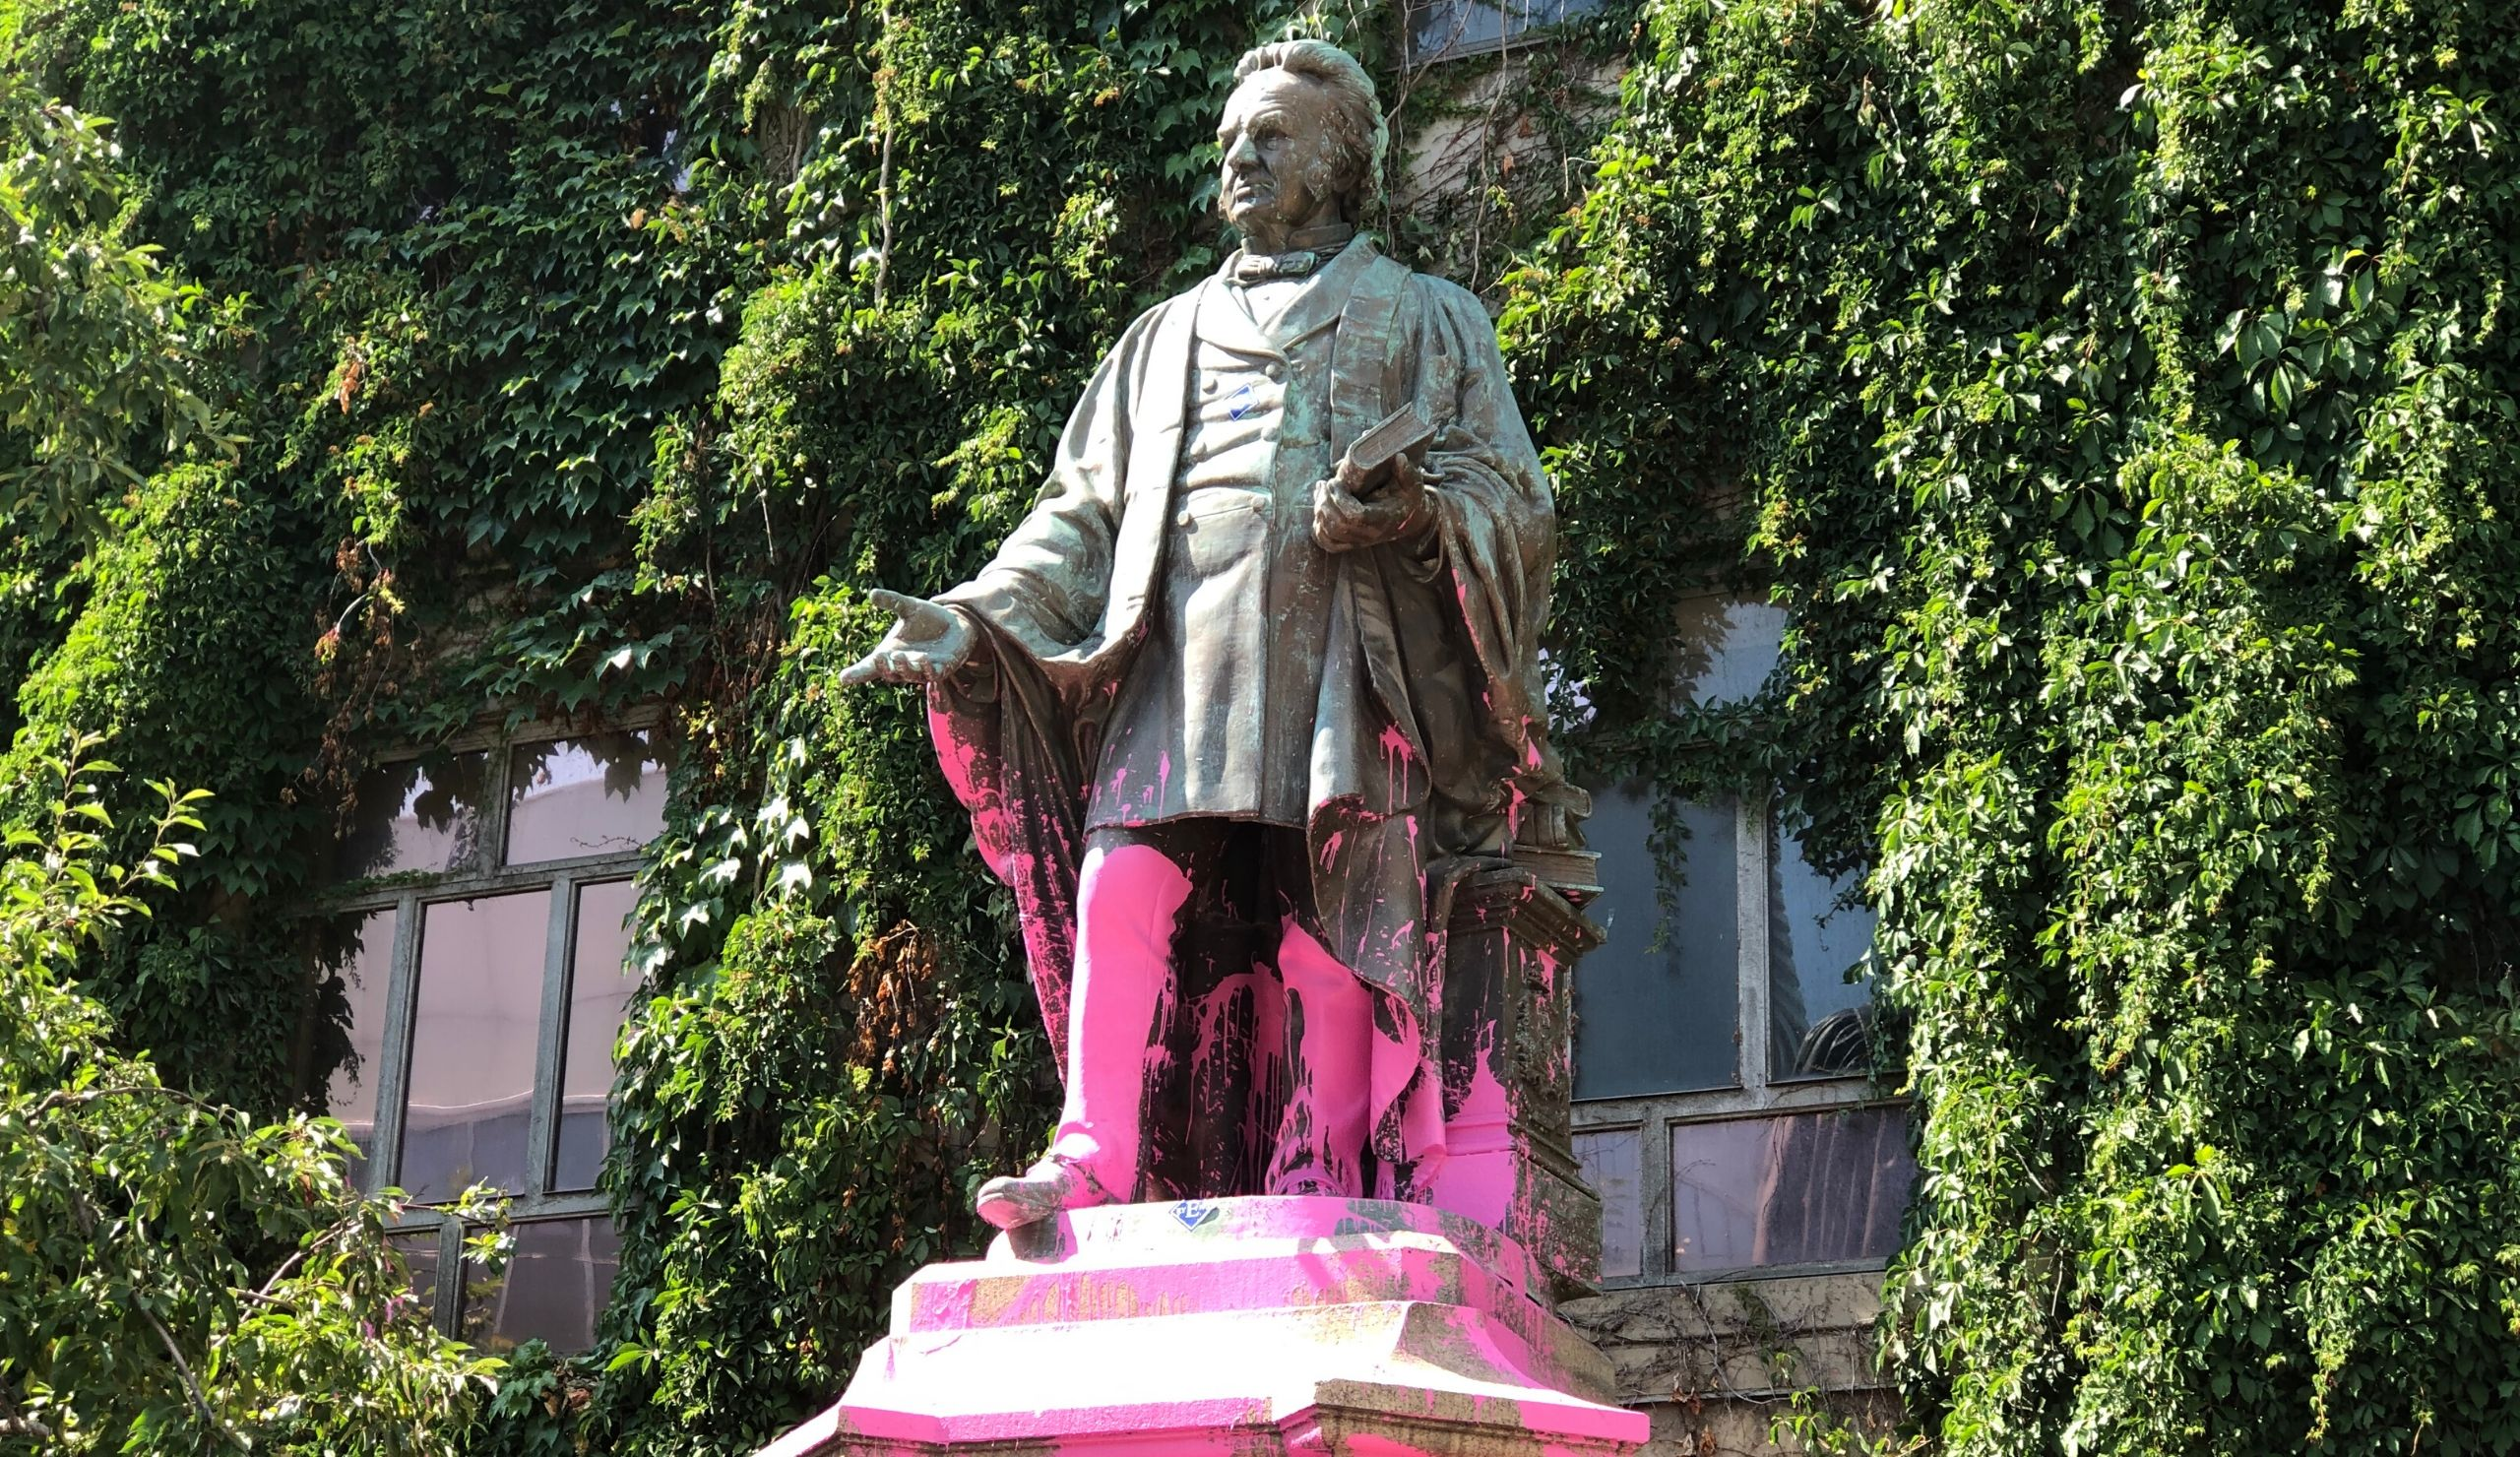 A tall statue of Egerton Ryerson stands against a green, mossy wall. The bottom of the statue has been splashed with pink paint.